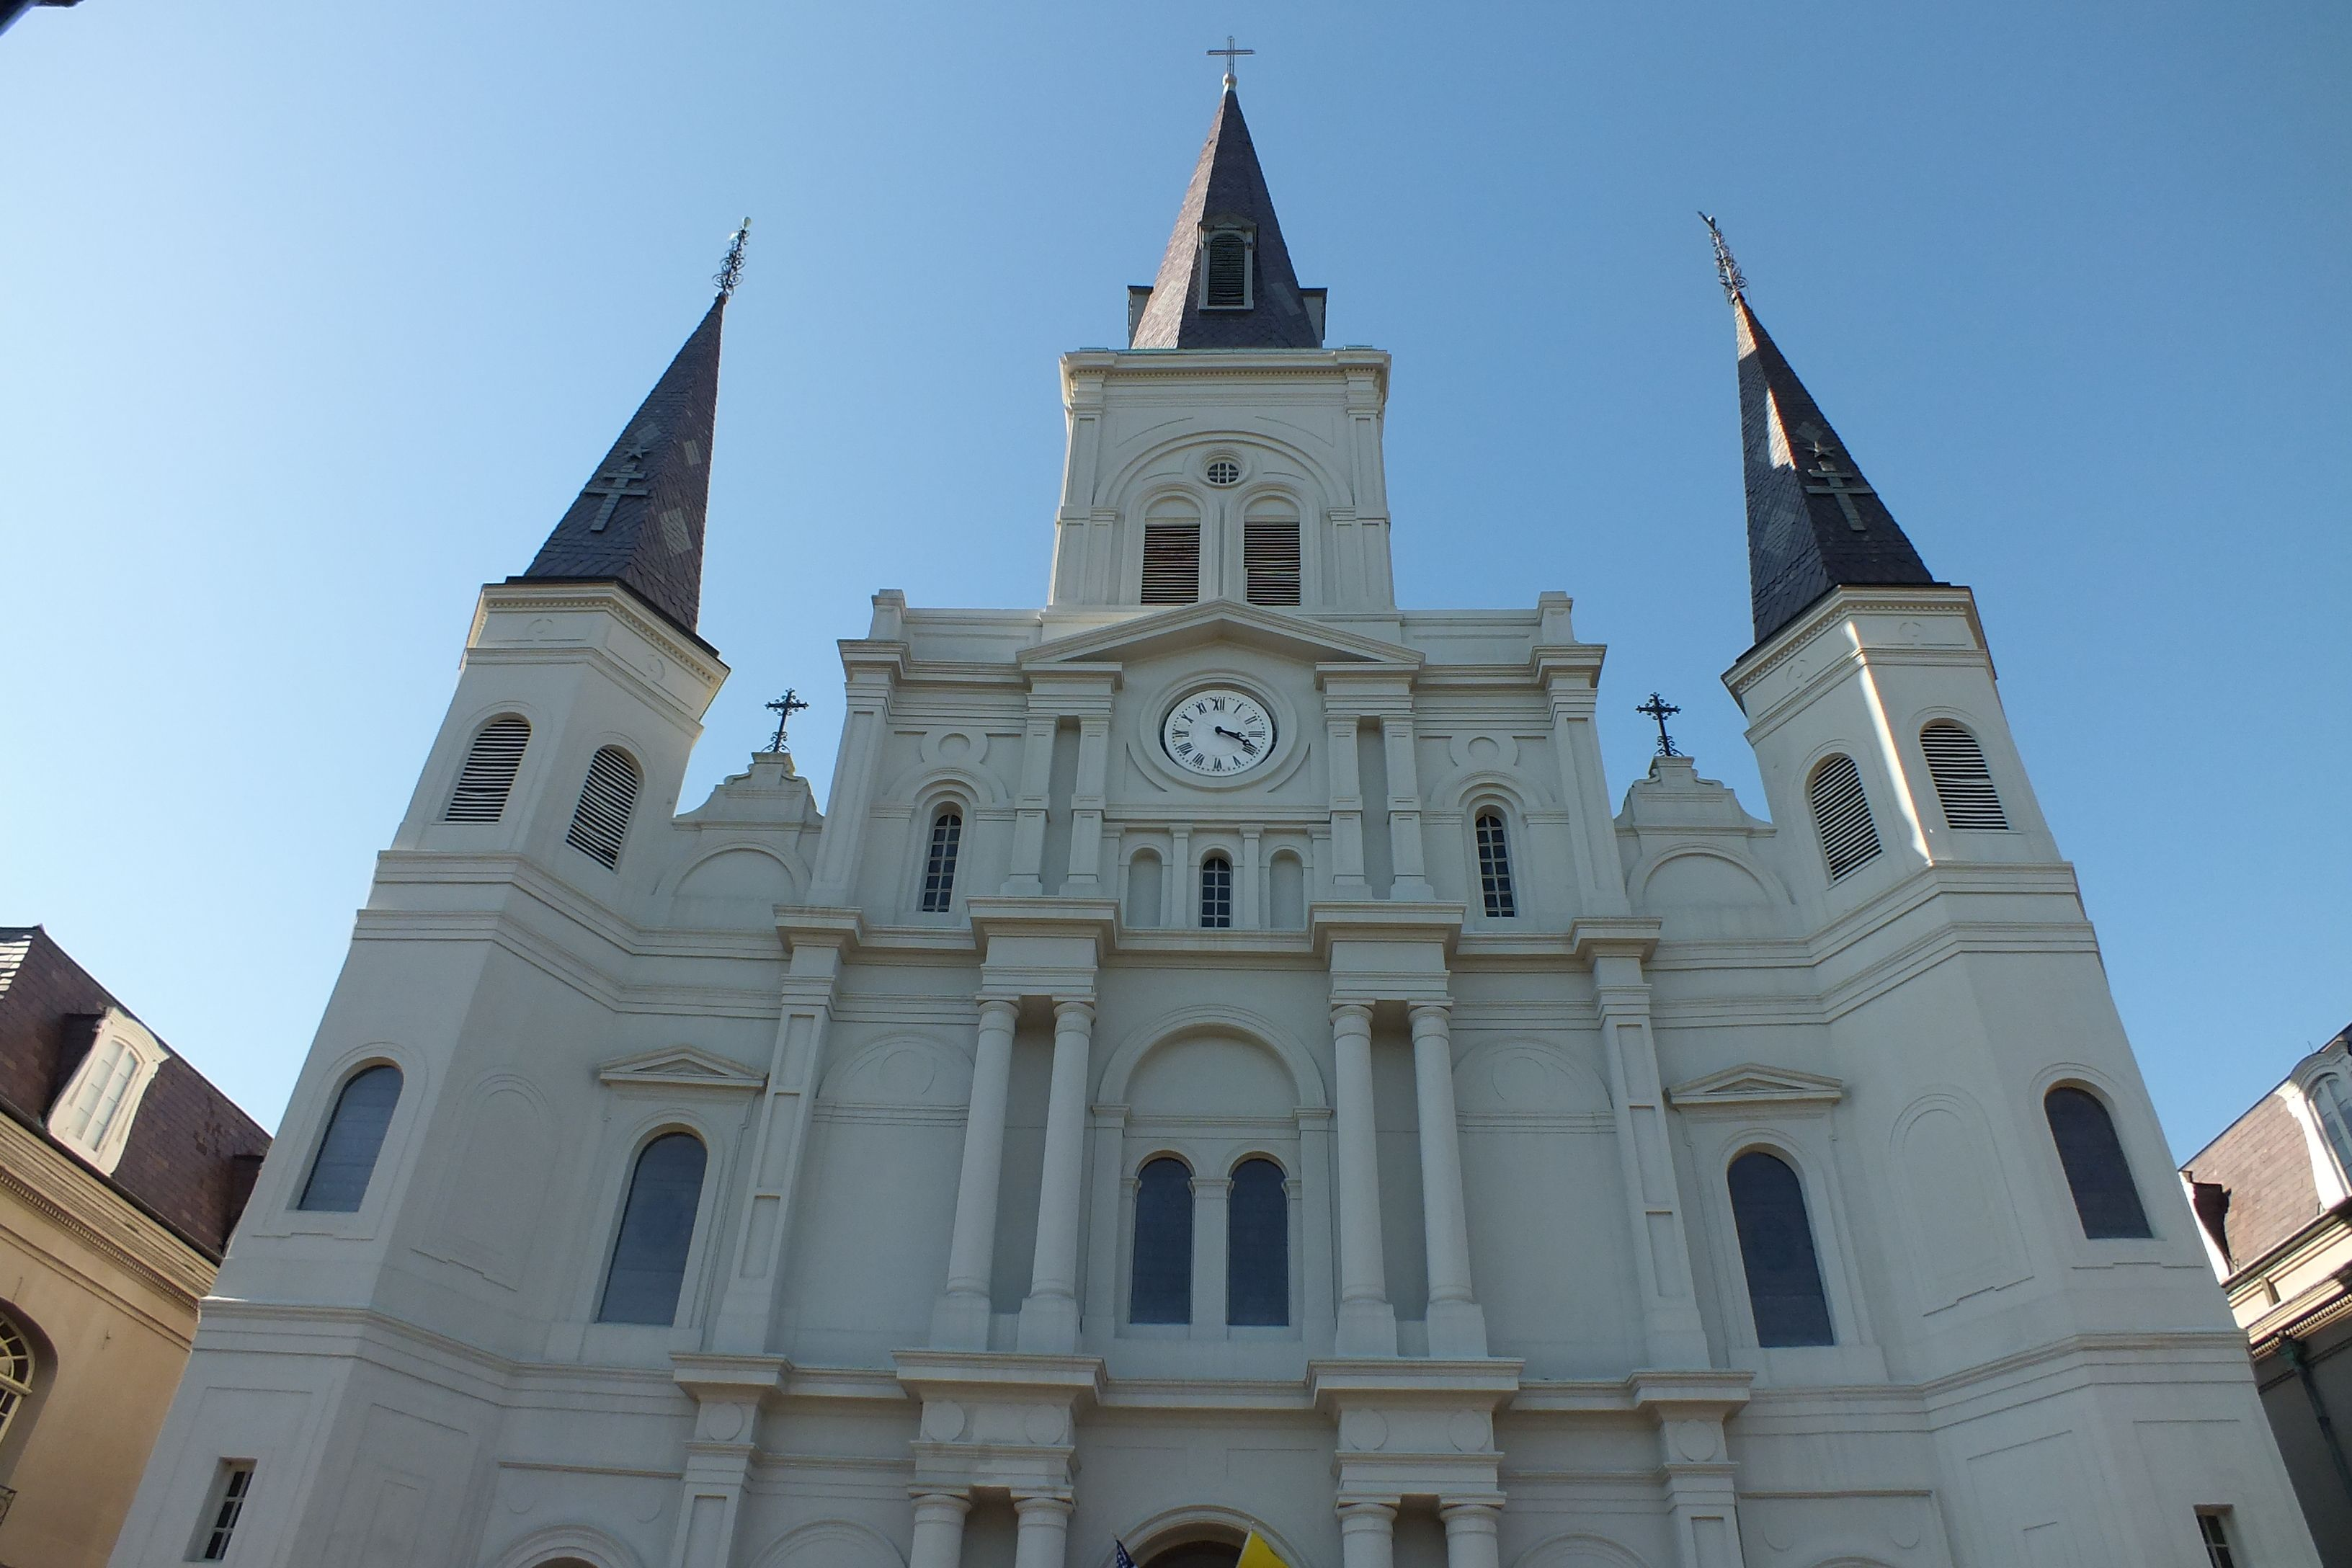 Close up of that castle in the French Quarter.